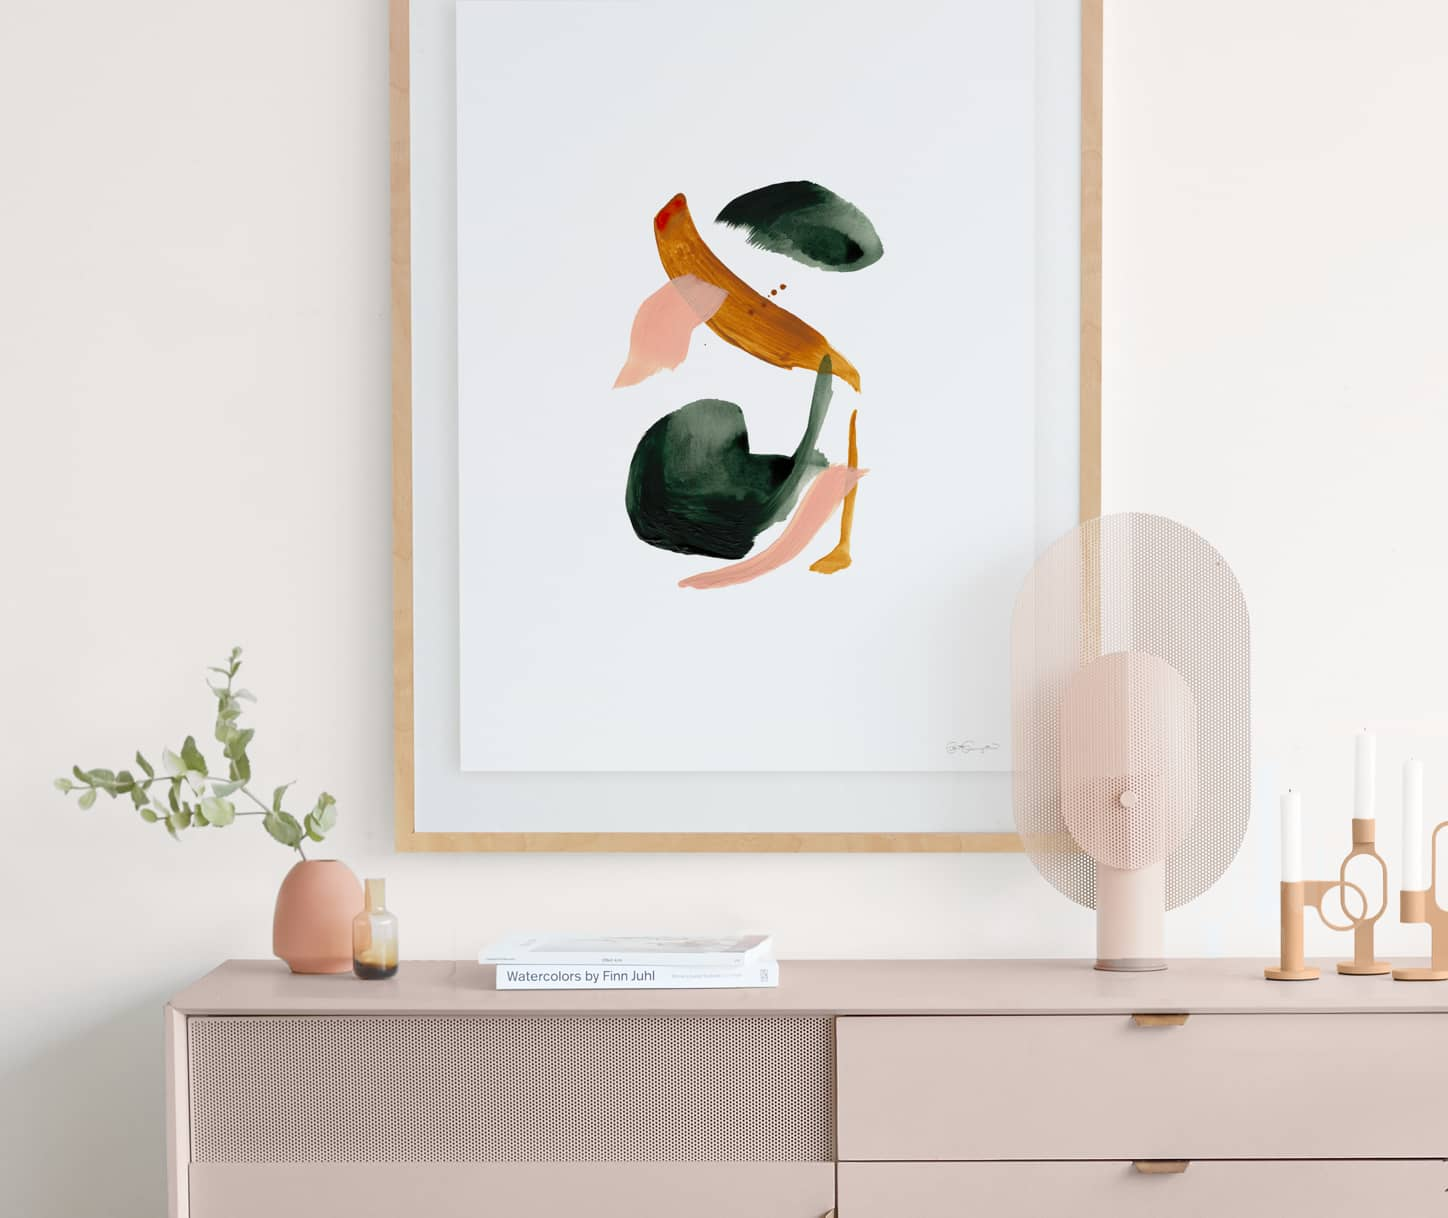 Float mounted art on a wall